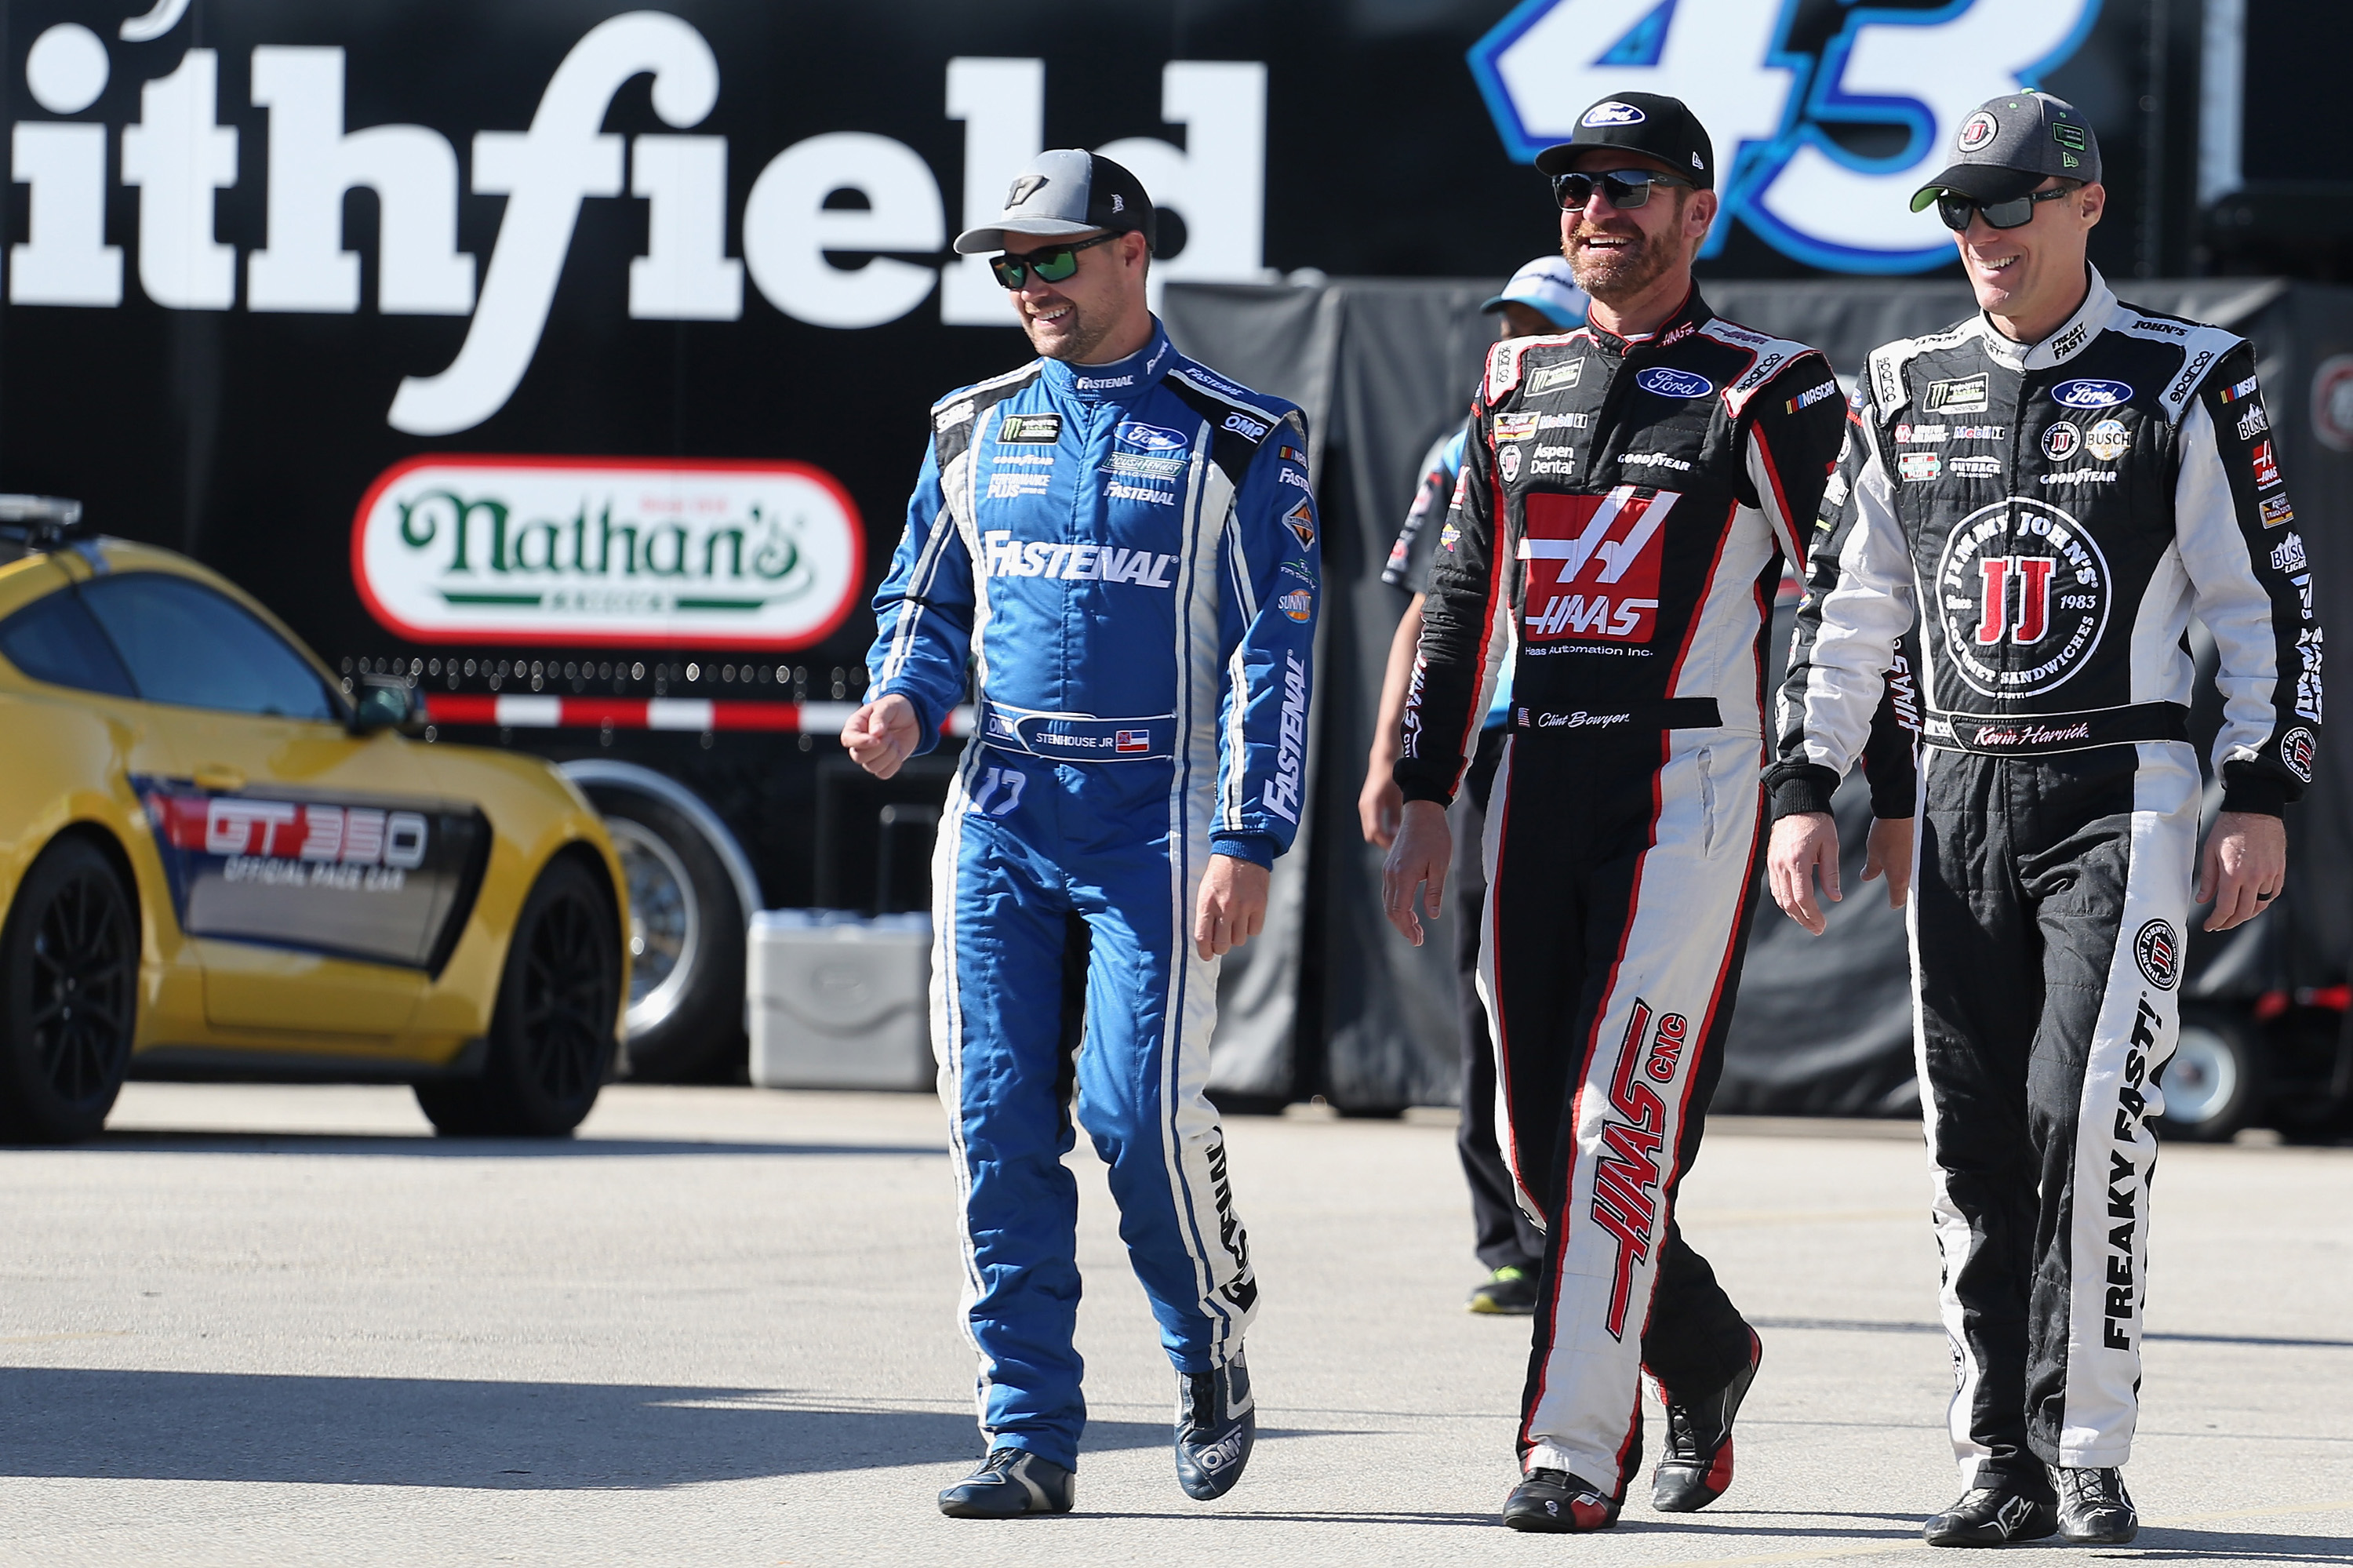 Ricky Stenhouse Jr, Clint Bowyer, Kevin Harvick